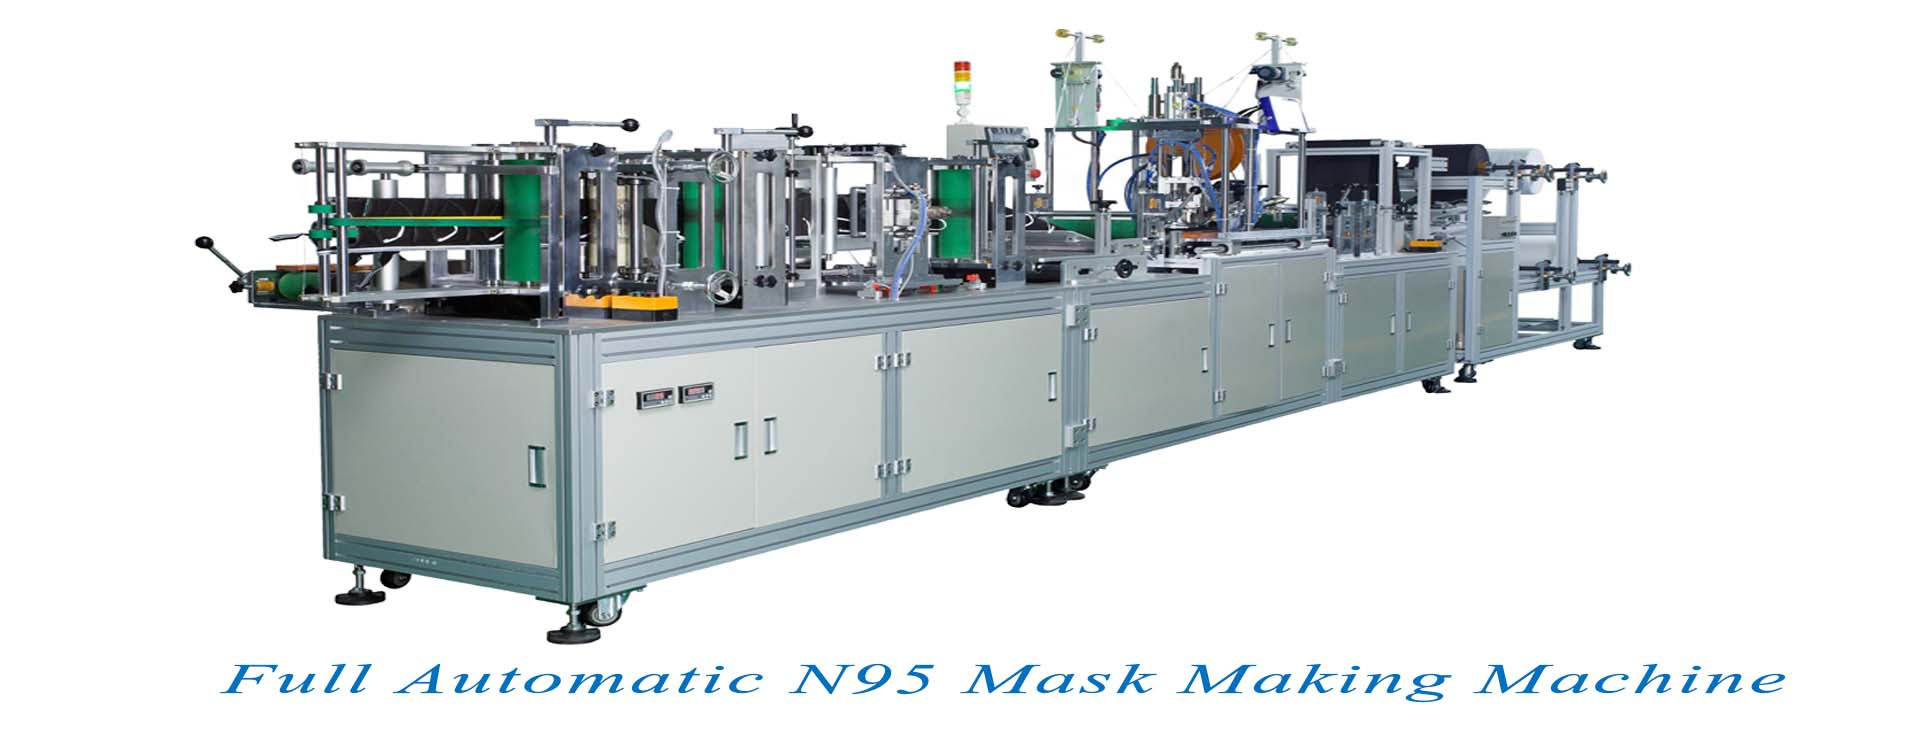 Full Automatic N95 Mask Making Machine DG-300D